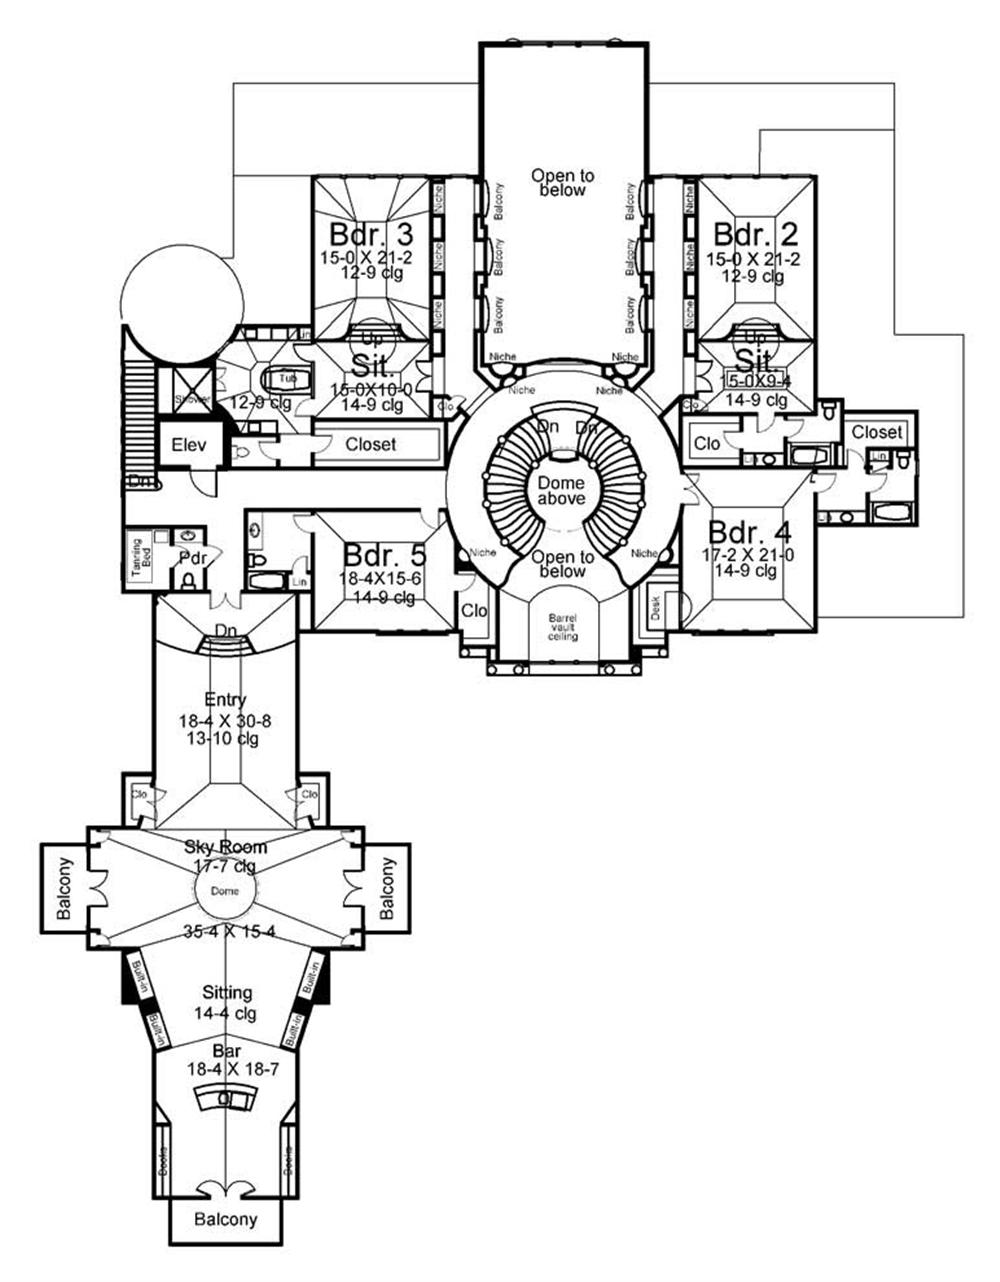 Luxury Estate Floor Plans – Luxury Estate Home Floor Plans